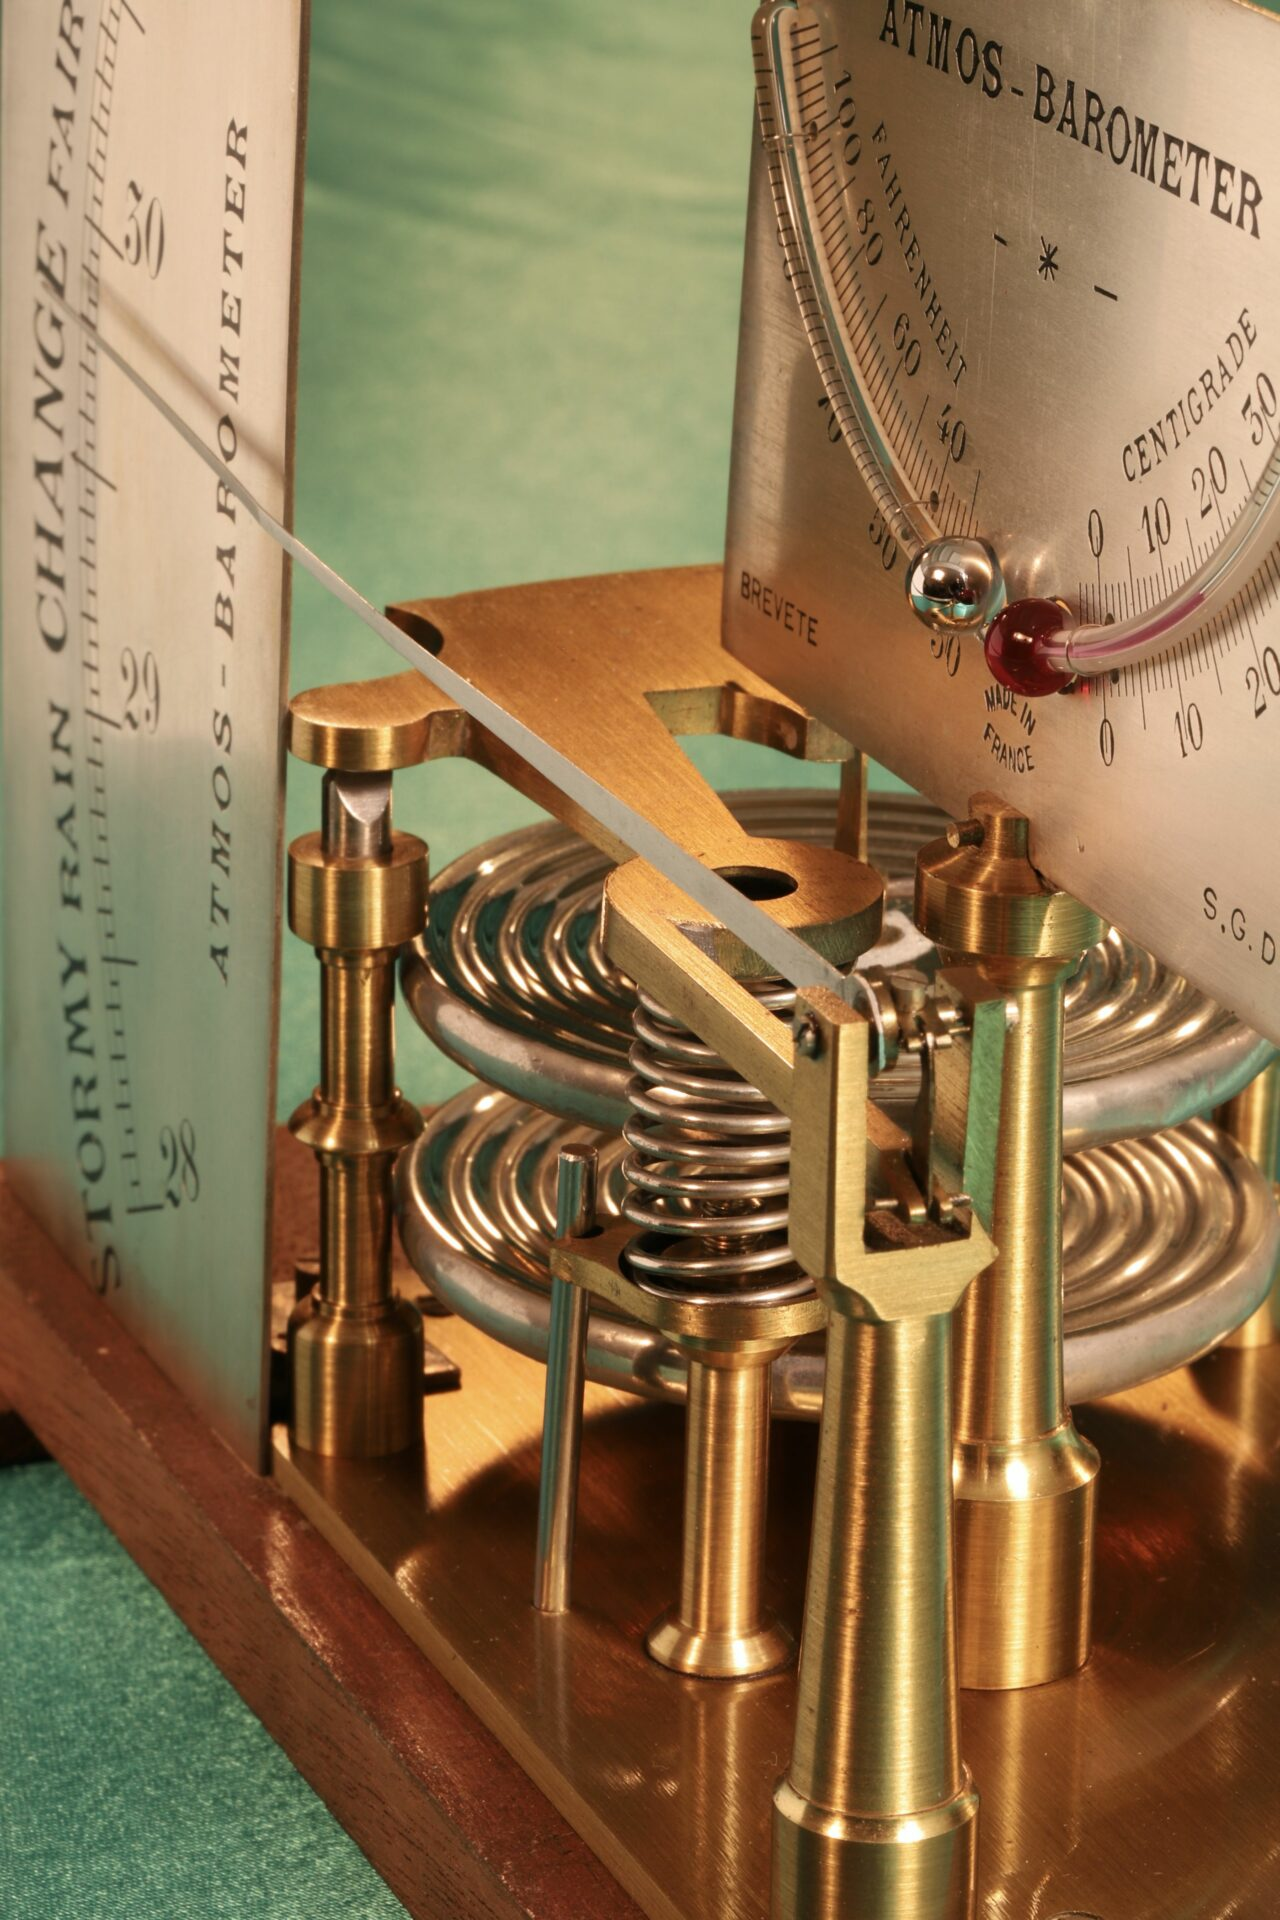 Close up of dials and movement of French Atmos Barometer c1875, showing the thermometers clearly